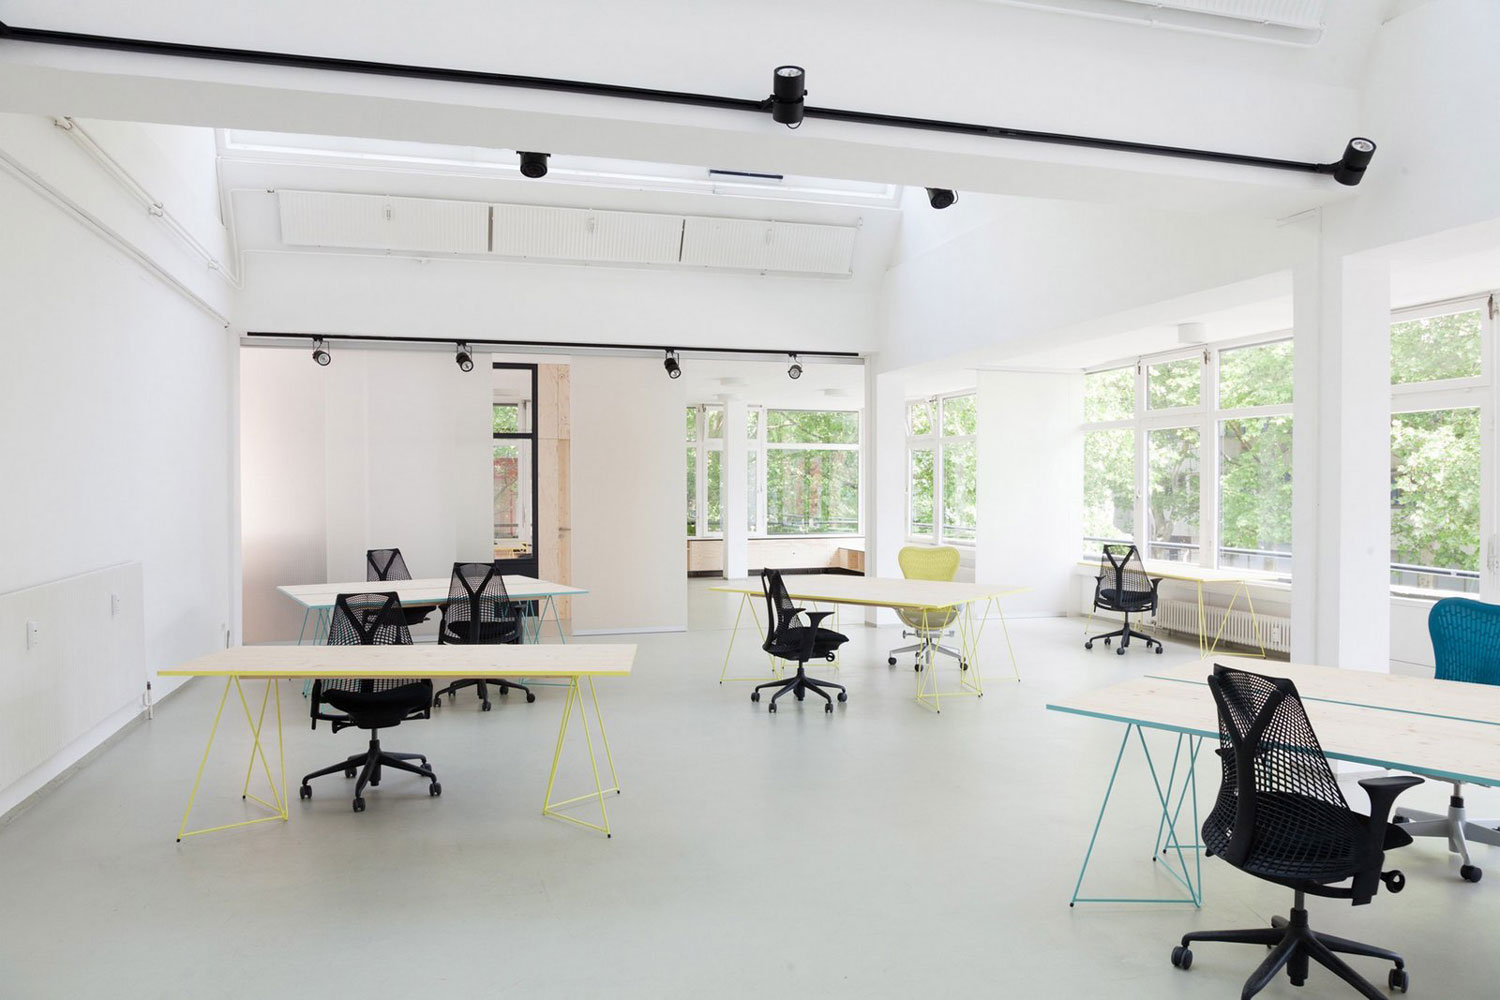 Impact Hub Berlin Office Design | Yellowtrace